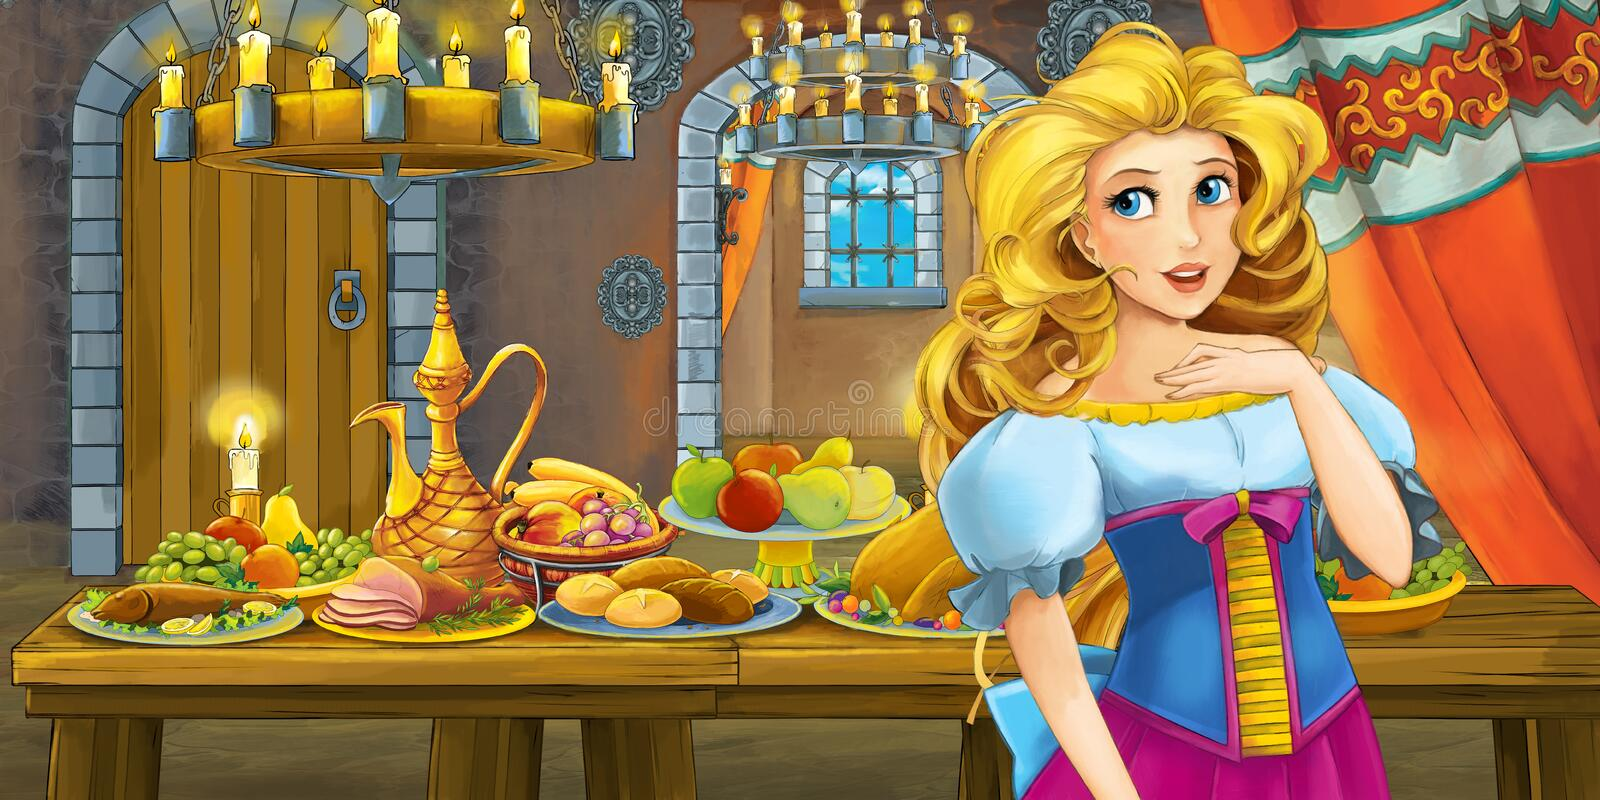 Cartoon fairy tale with princess in the castle by the table full of food looking and smiling royalty free illustration